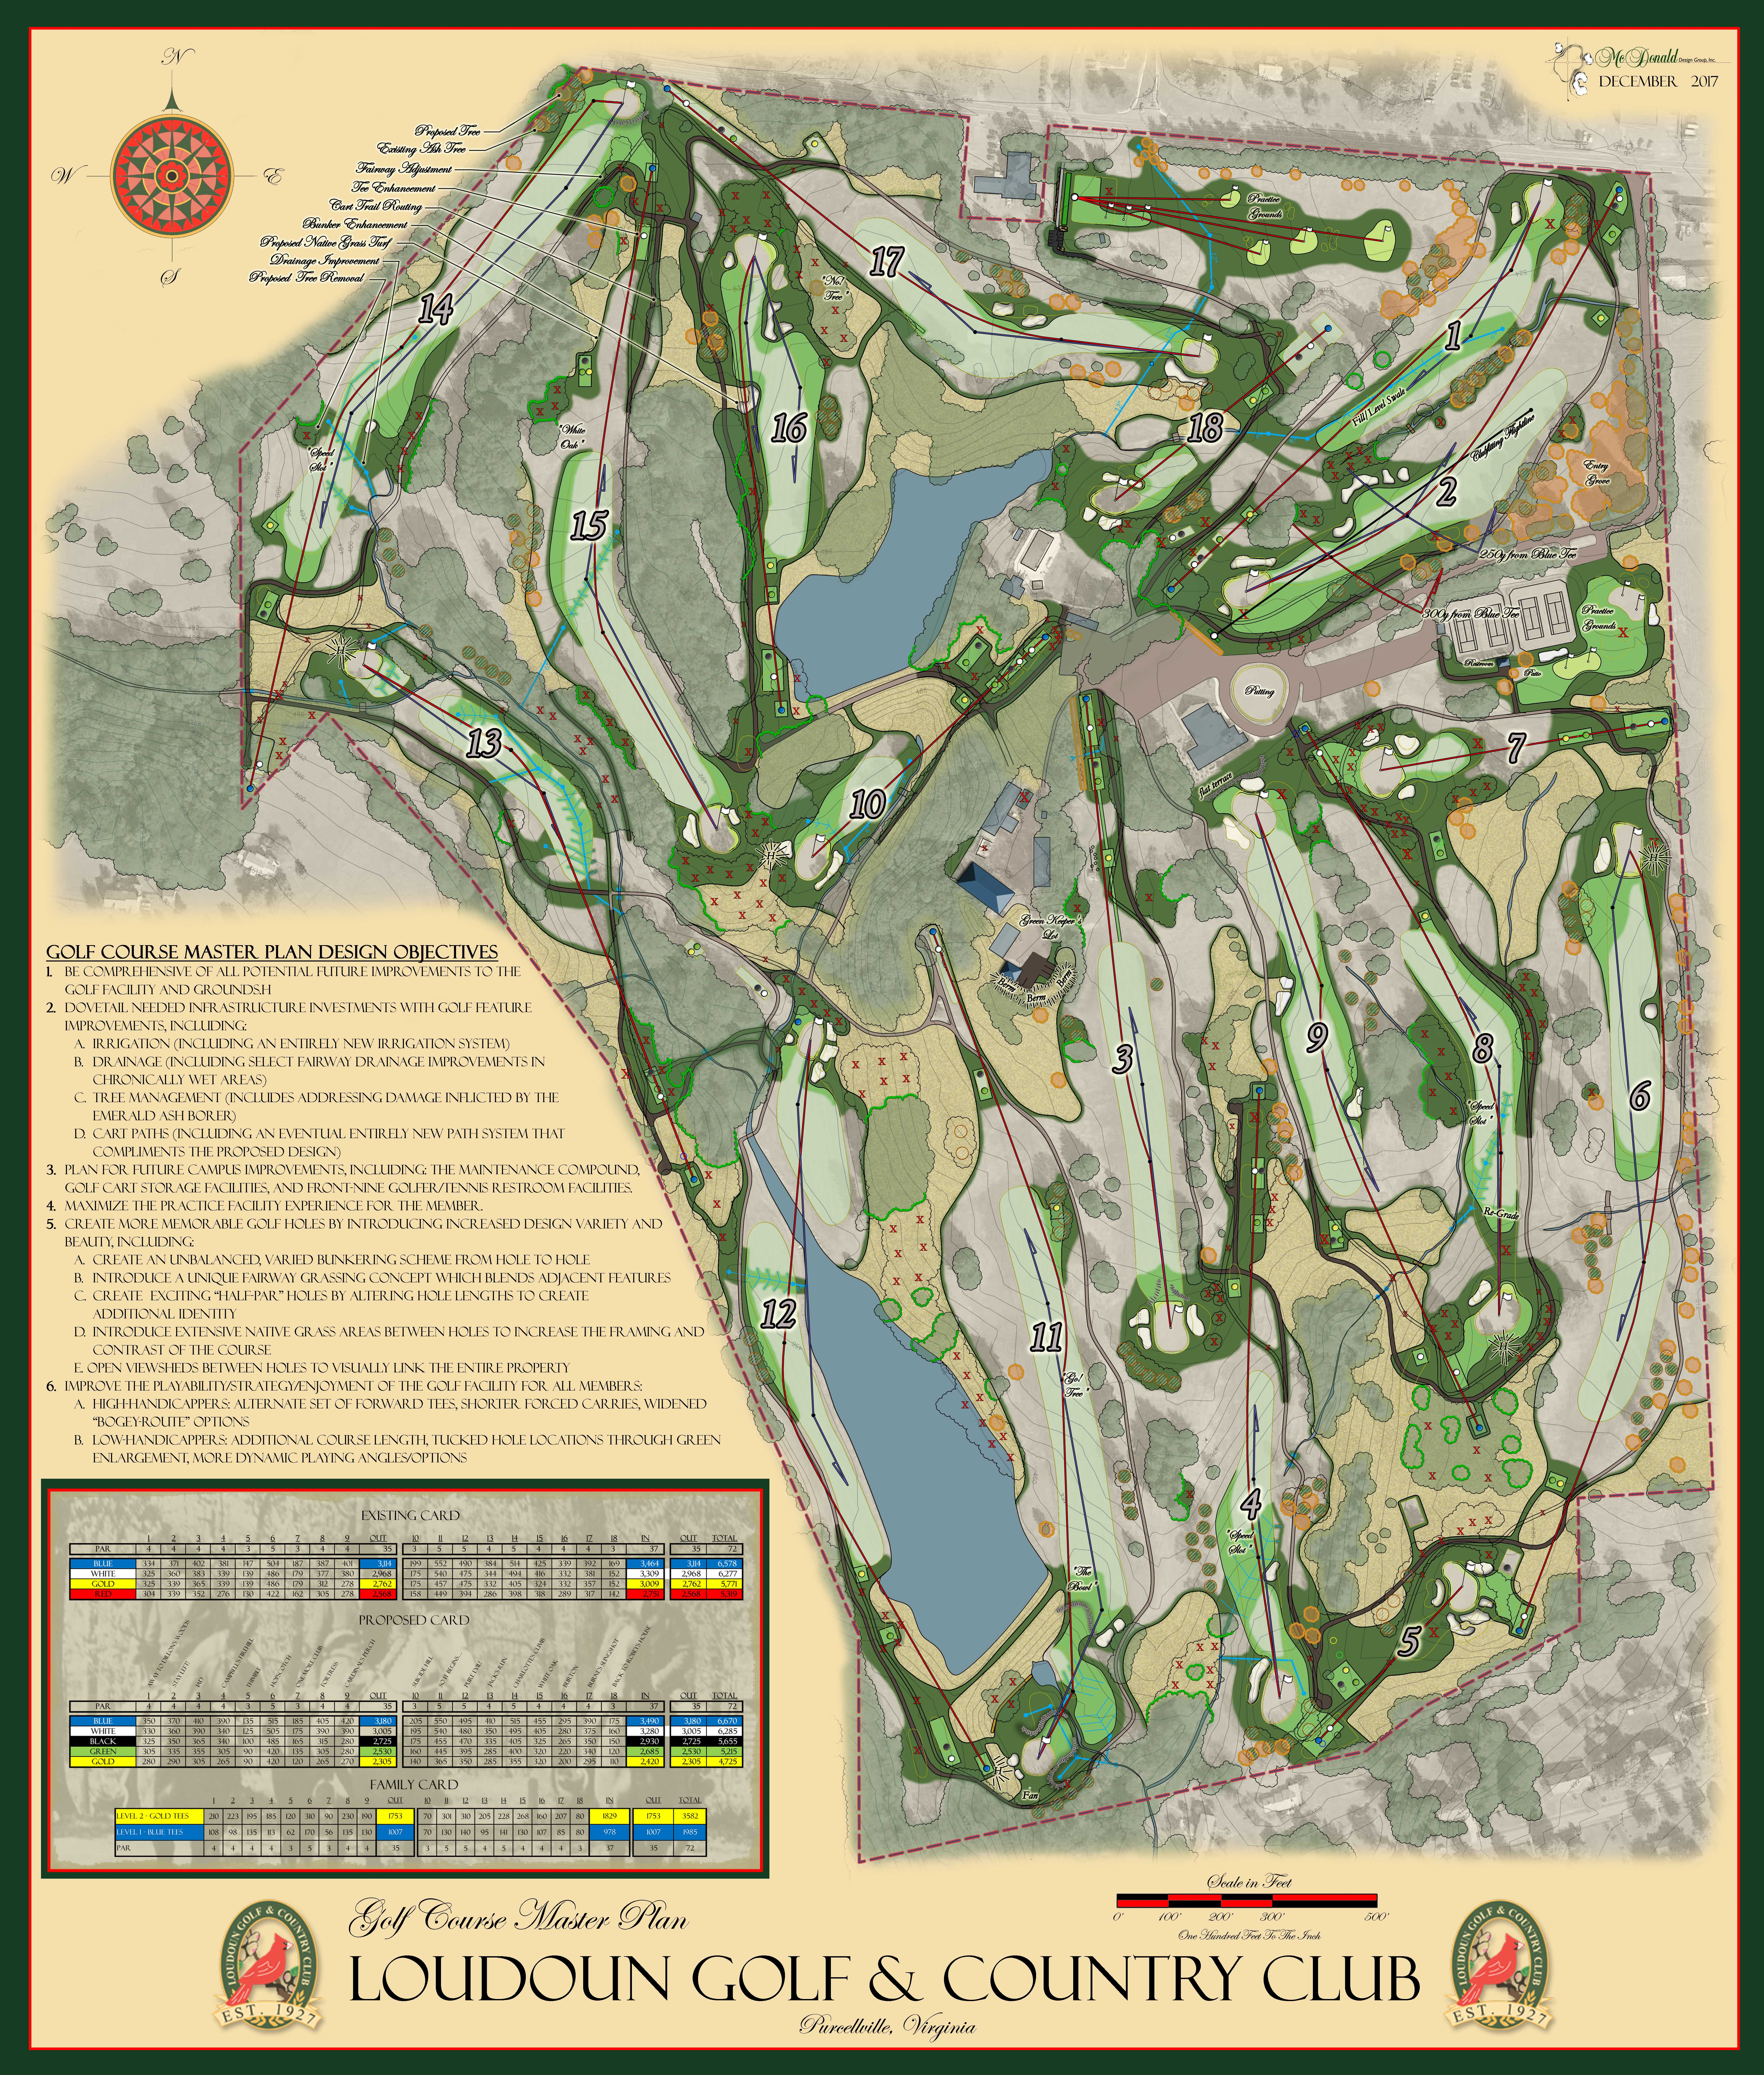 Loudoun Golf & Country Club<br/>Master Planning